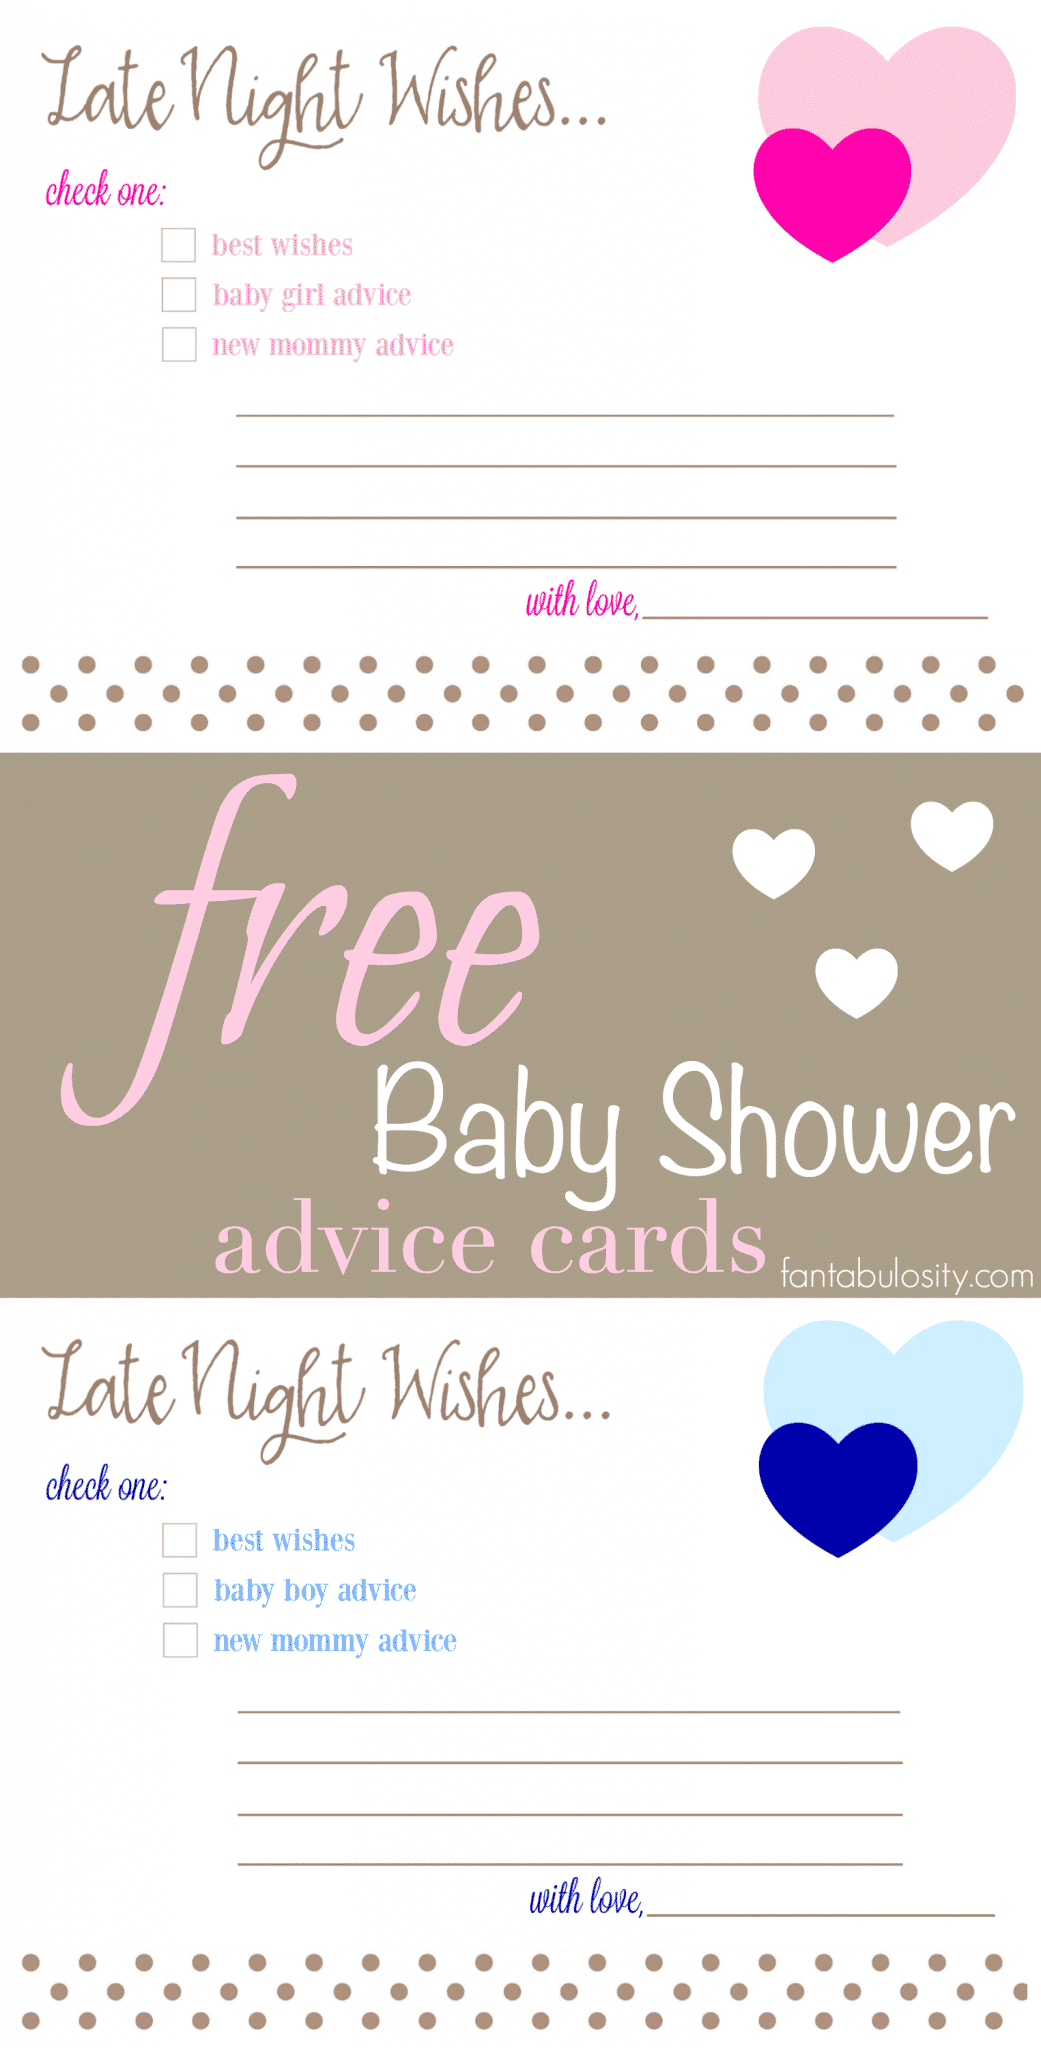 Late night wishes baby shower advice cards fantabulosity for Wishes for baby template printable